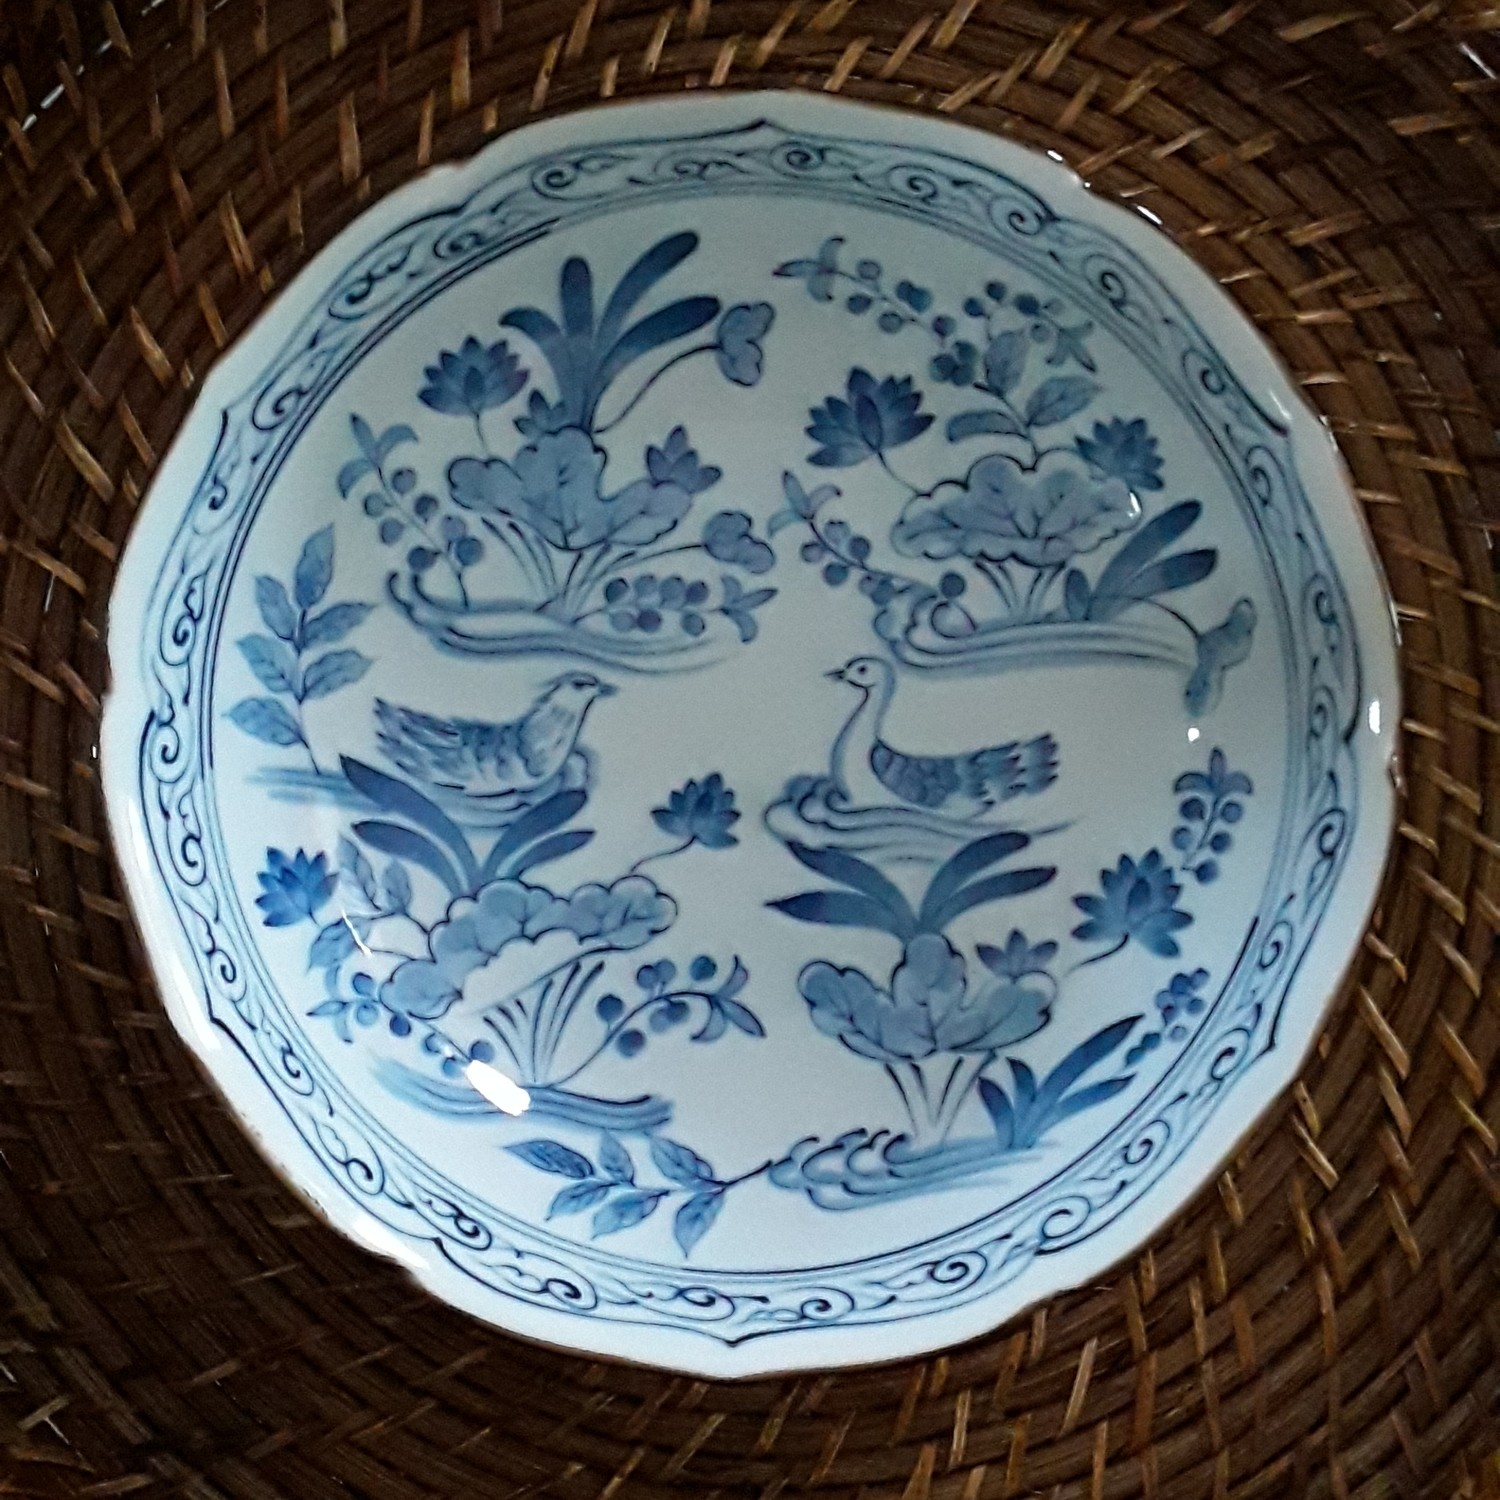 Vintage Blue and White Arita Porcelain Bowl - Mandarin Ducks